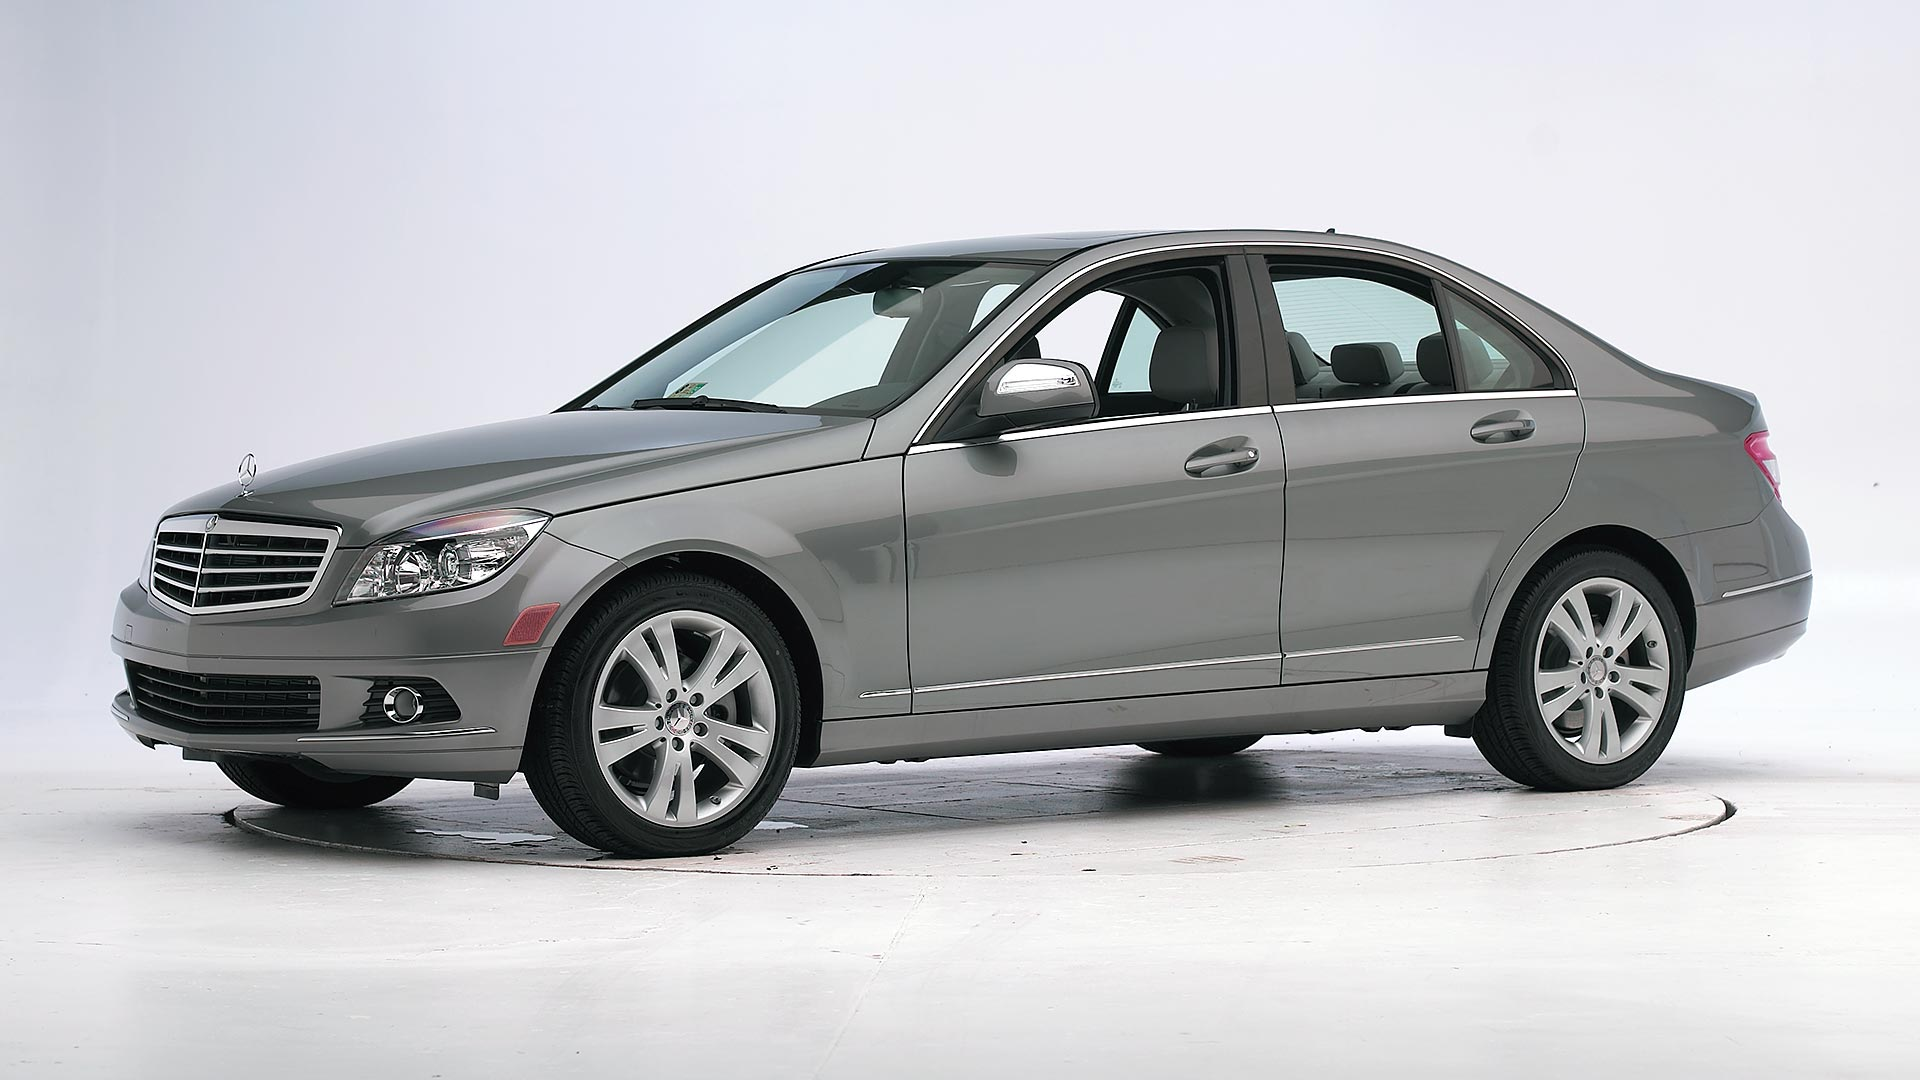 2009 Mercedes-Benz C-Class 4-door sedan